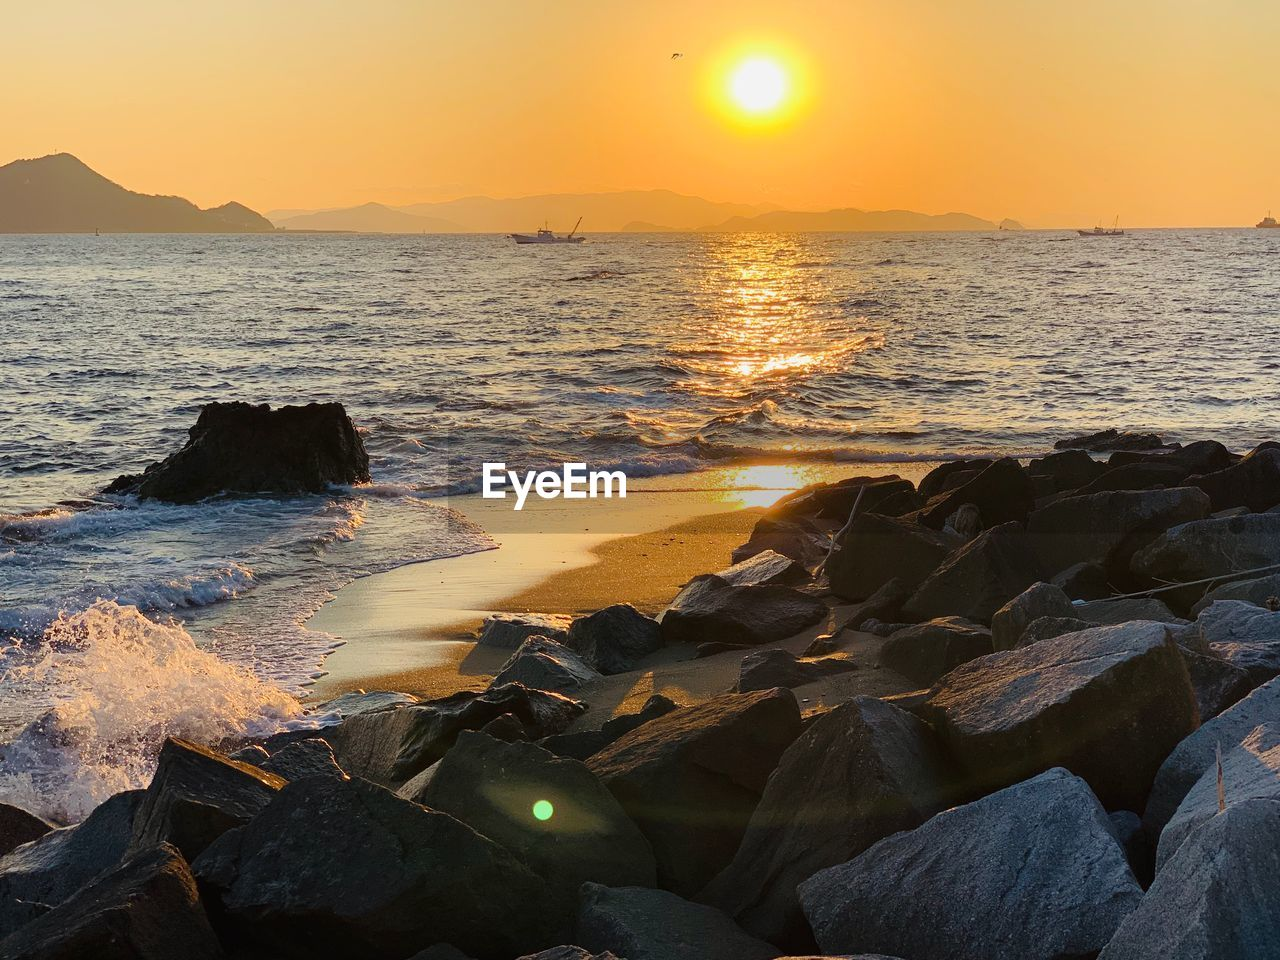 sea, water, sunset, rock, beauty in nature, scenics - nature, sky, beach, solid, rock - object, land, sun, tranquility, nature, idyllic, orange color, tranquil scene, horizon, horizon over water, no people, outdoors, rocky coastline